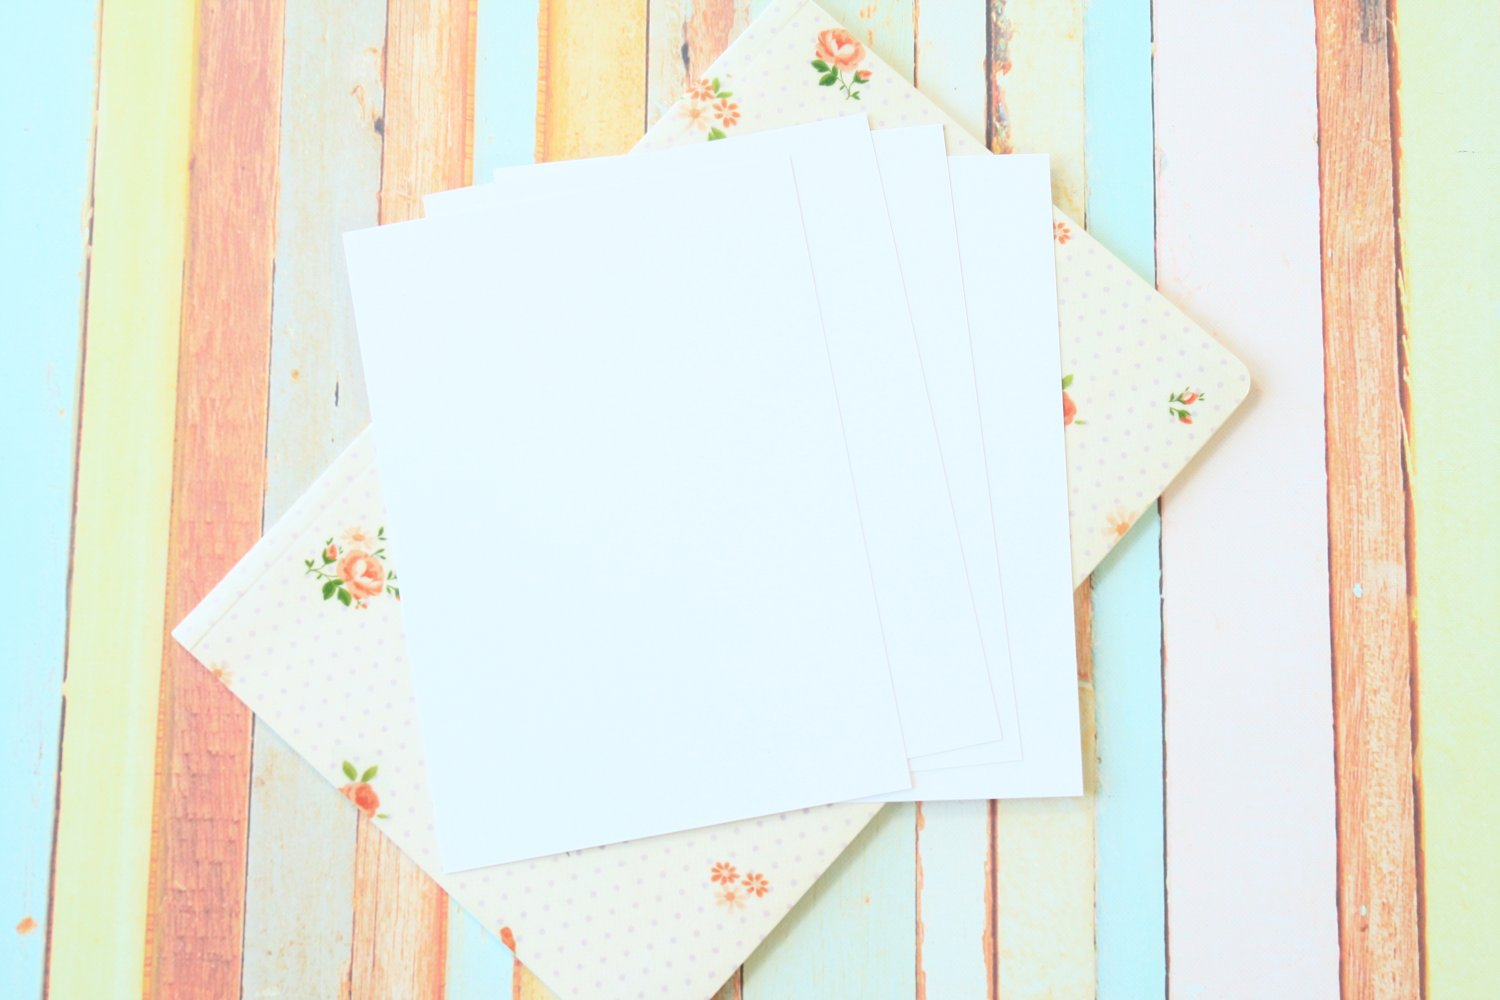 Cotton White Craft Style blank postcards